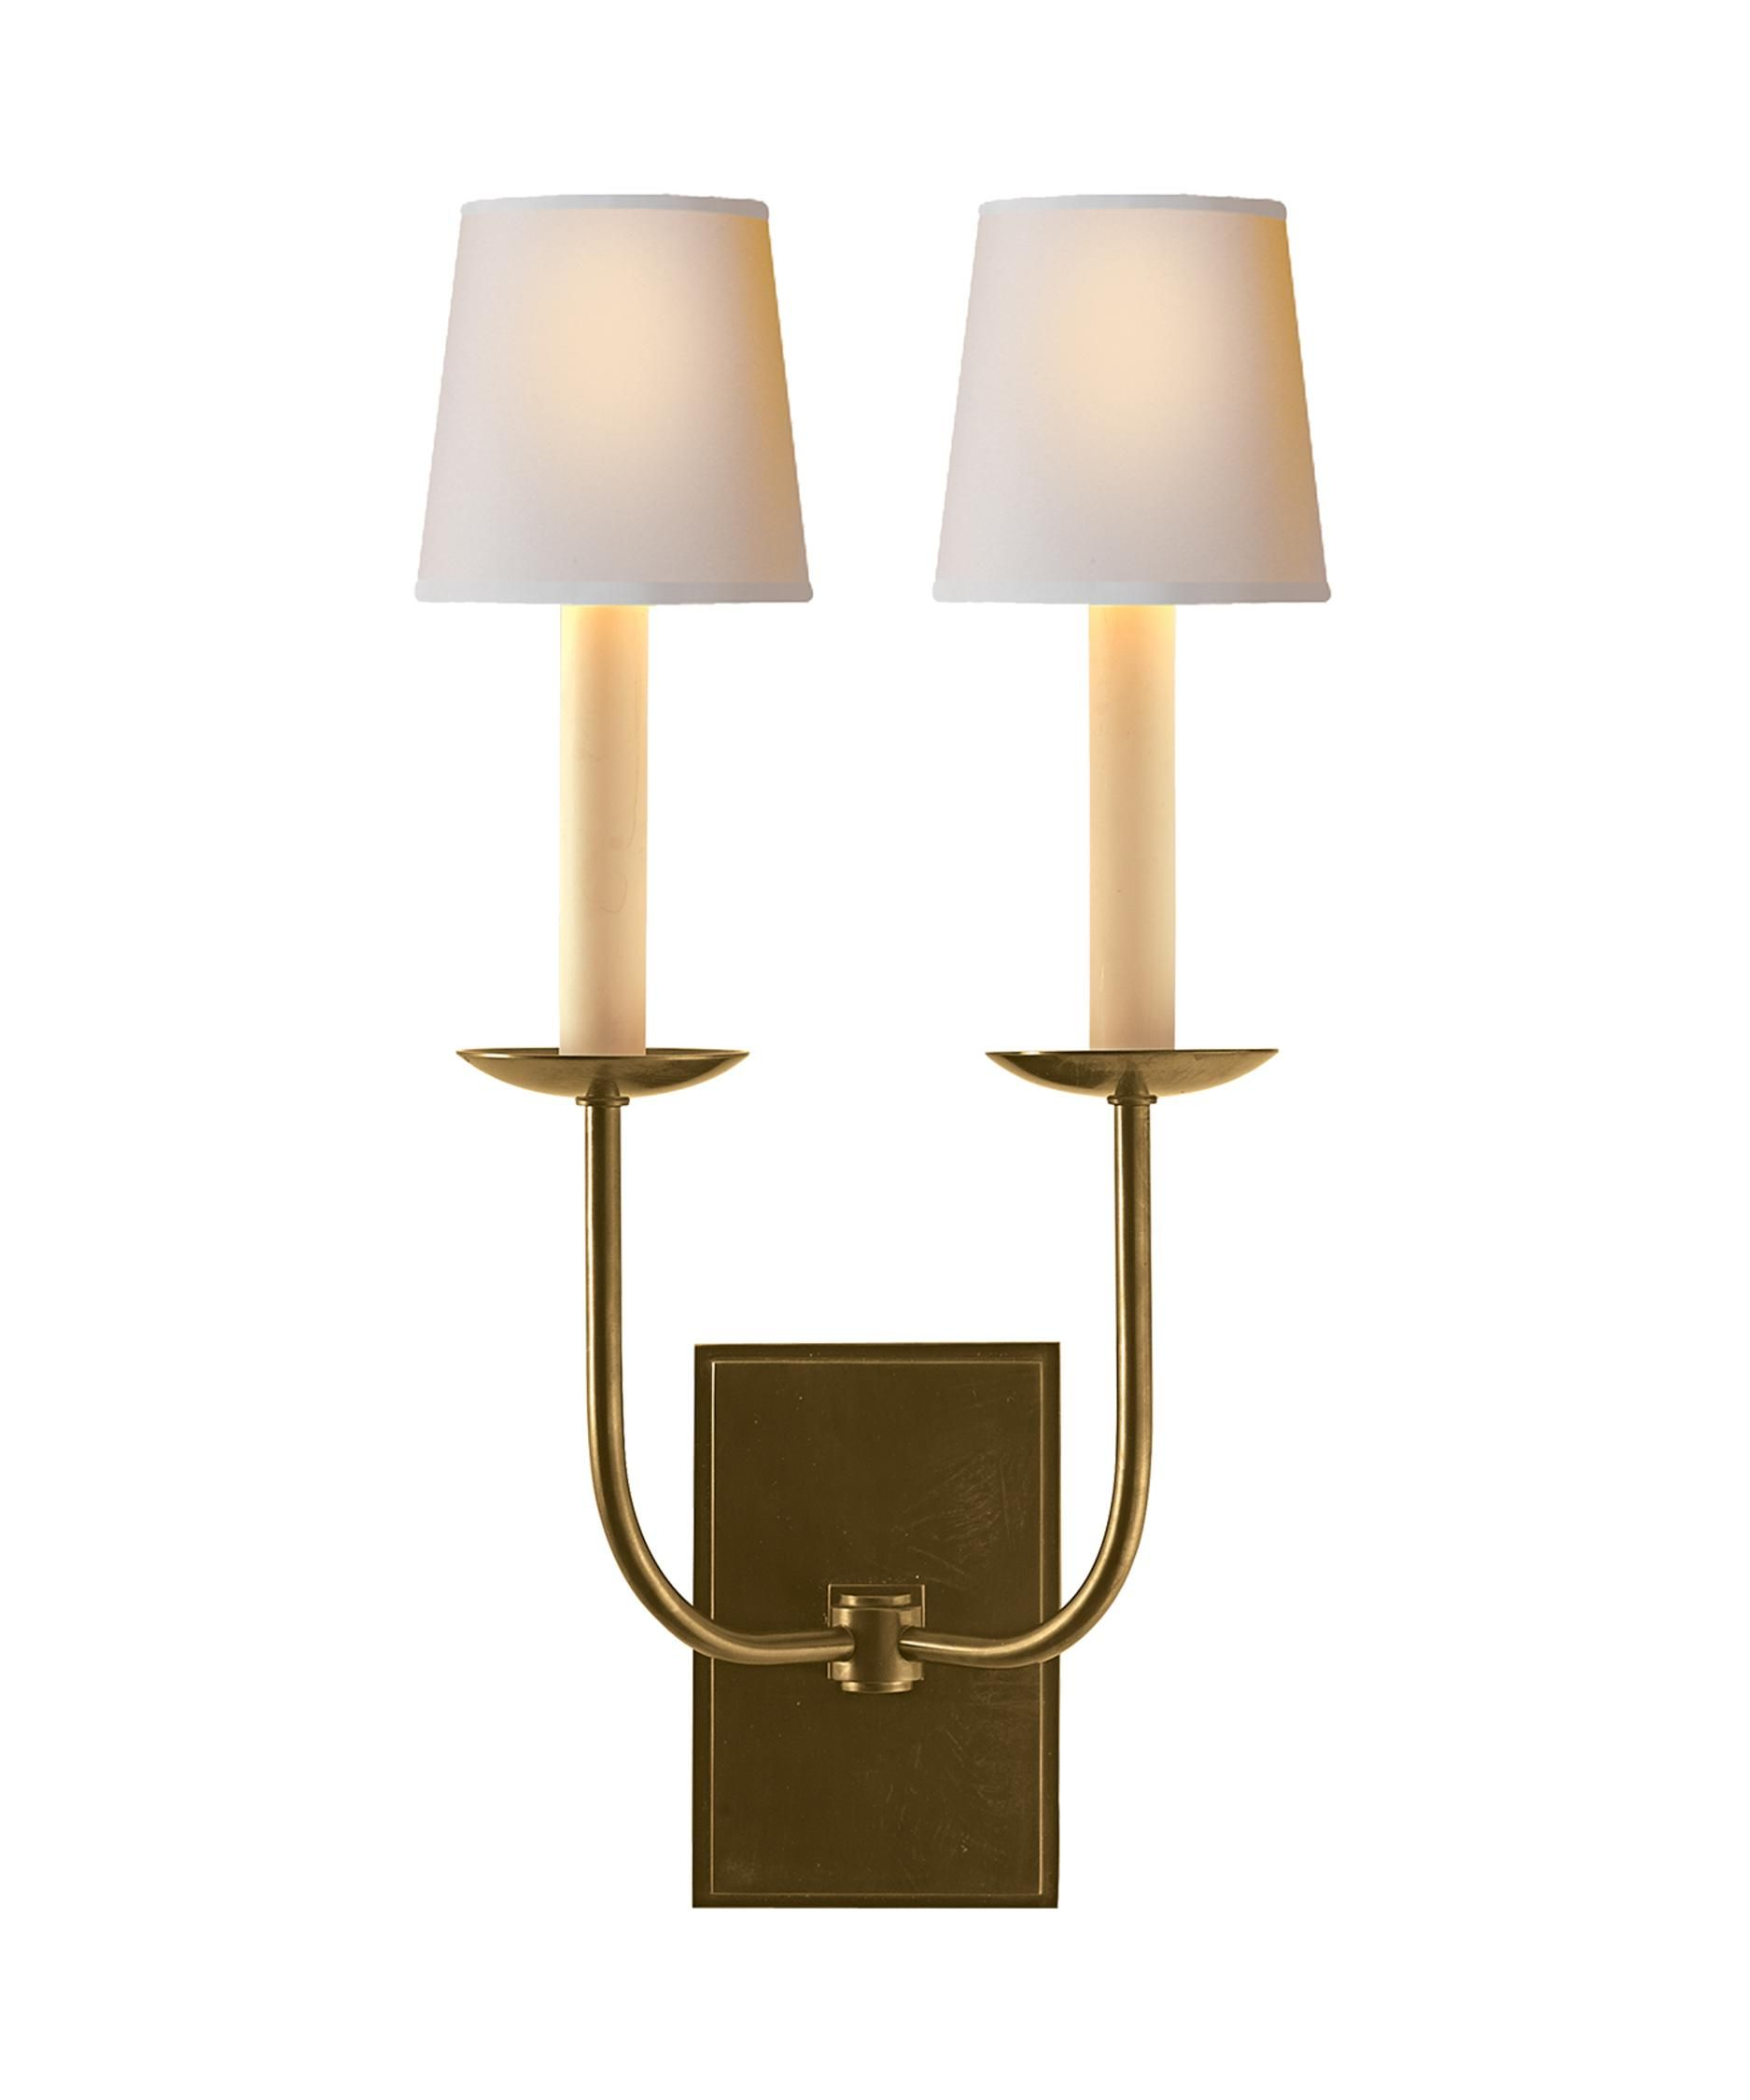 nickel p glass visual white lighting thomas bryant with brien o product polished sconces in sconce wg comfort htm